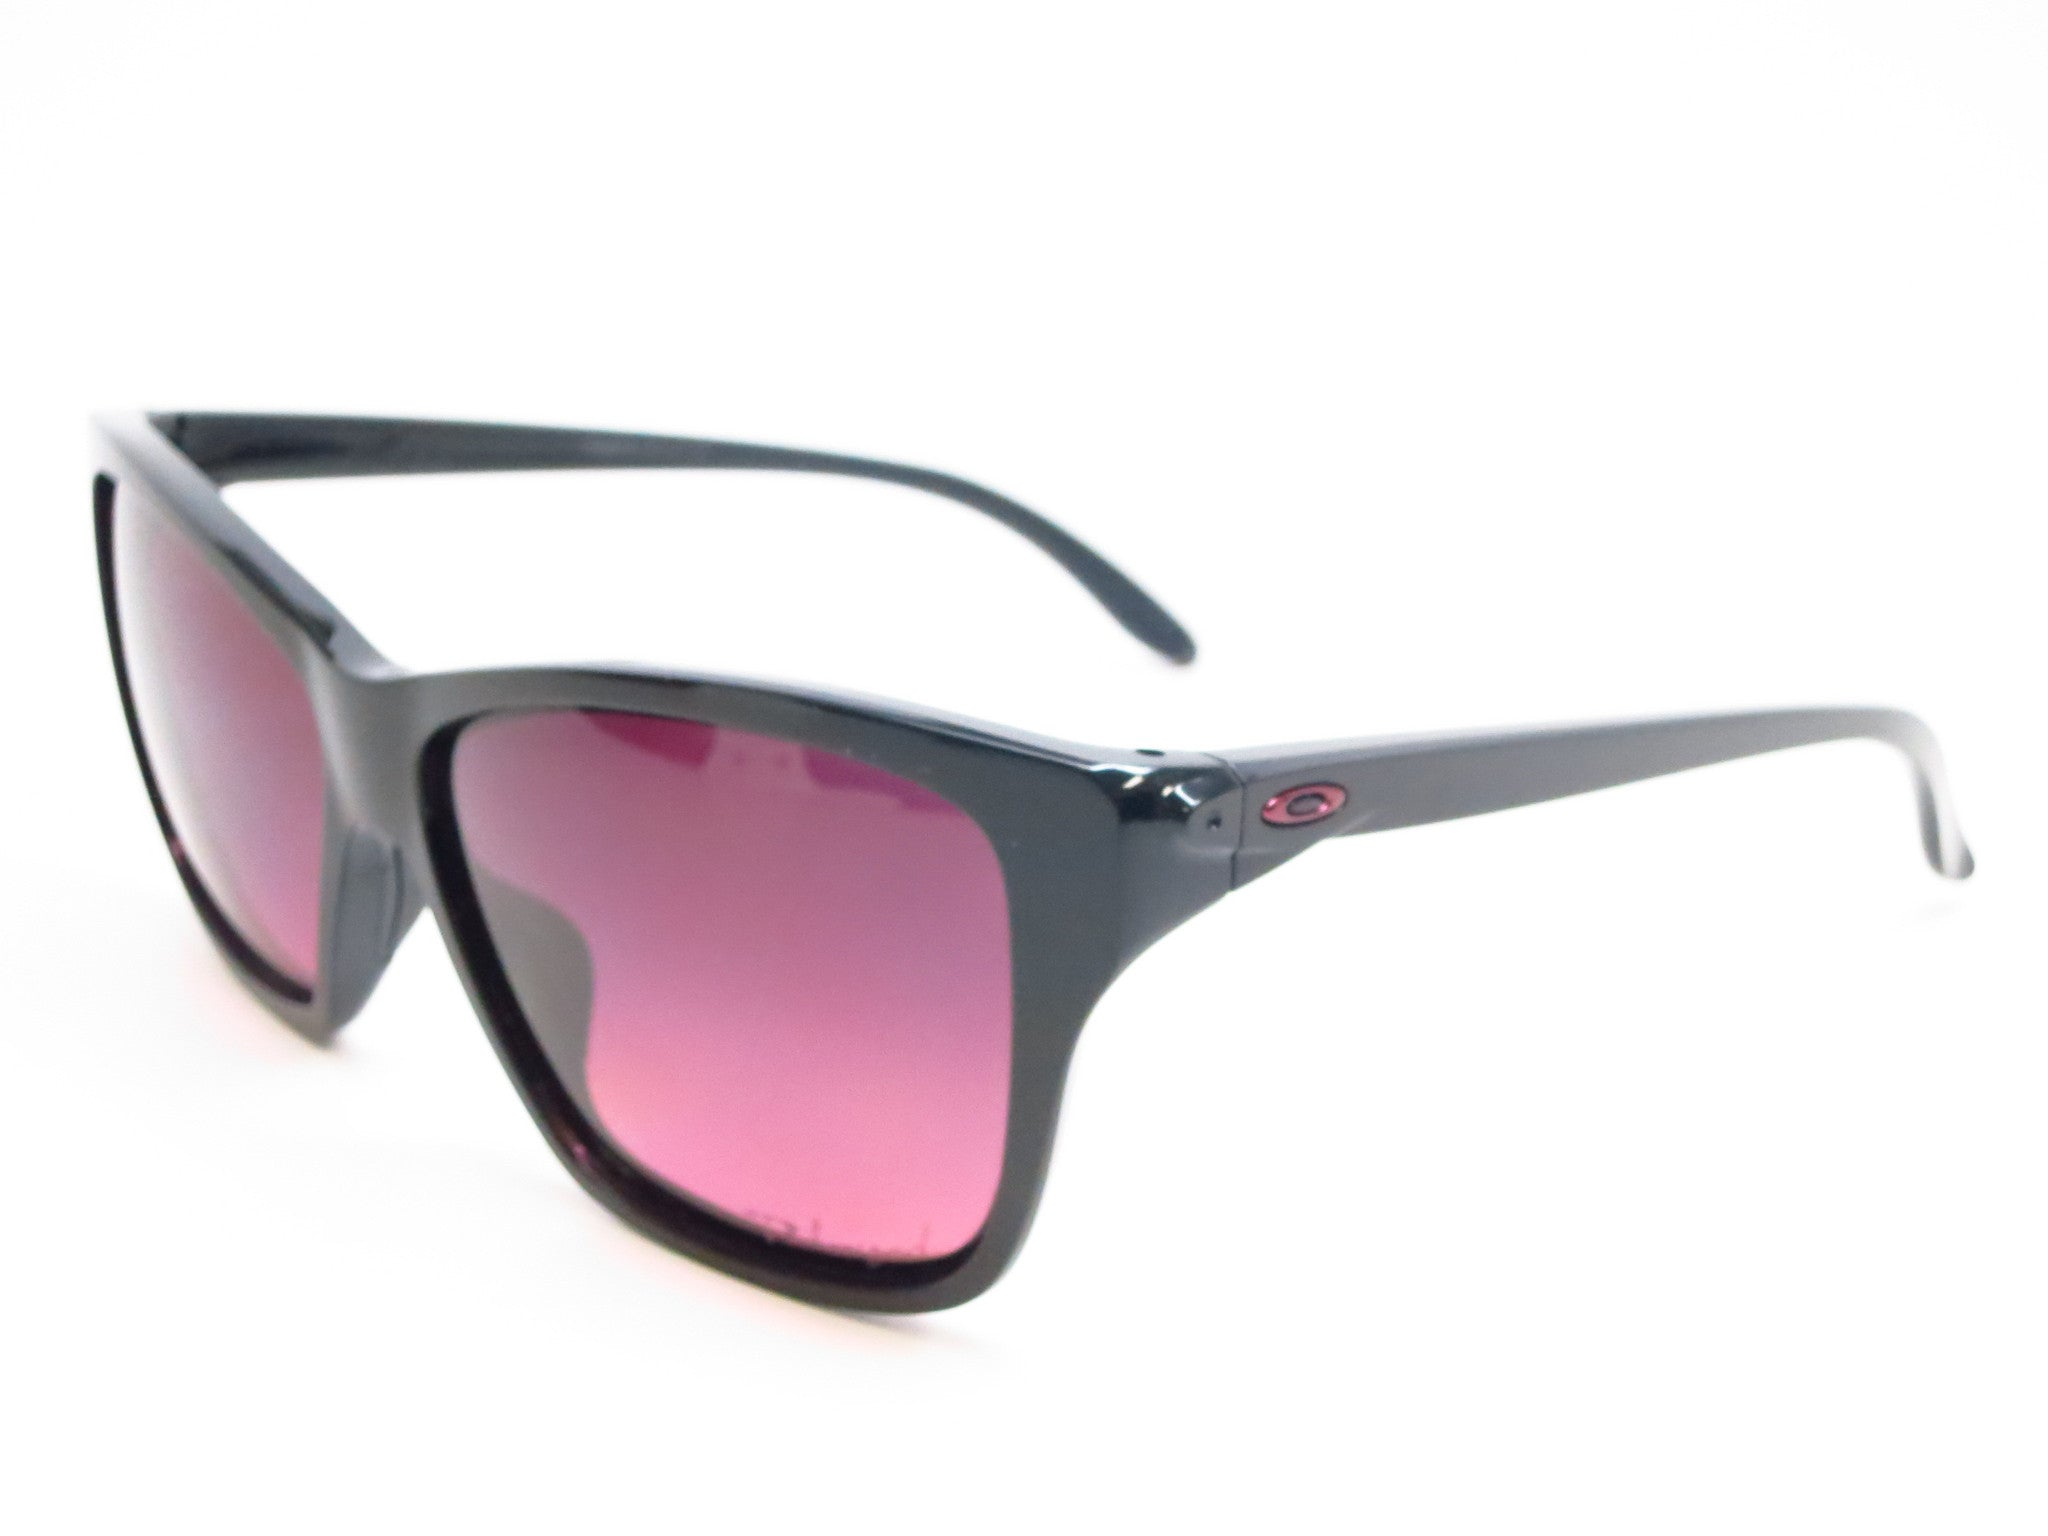 6870a0a1a9c Heritage Malta Sunglasses Outlet Sale Day Oakley One « xvRwq6pA